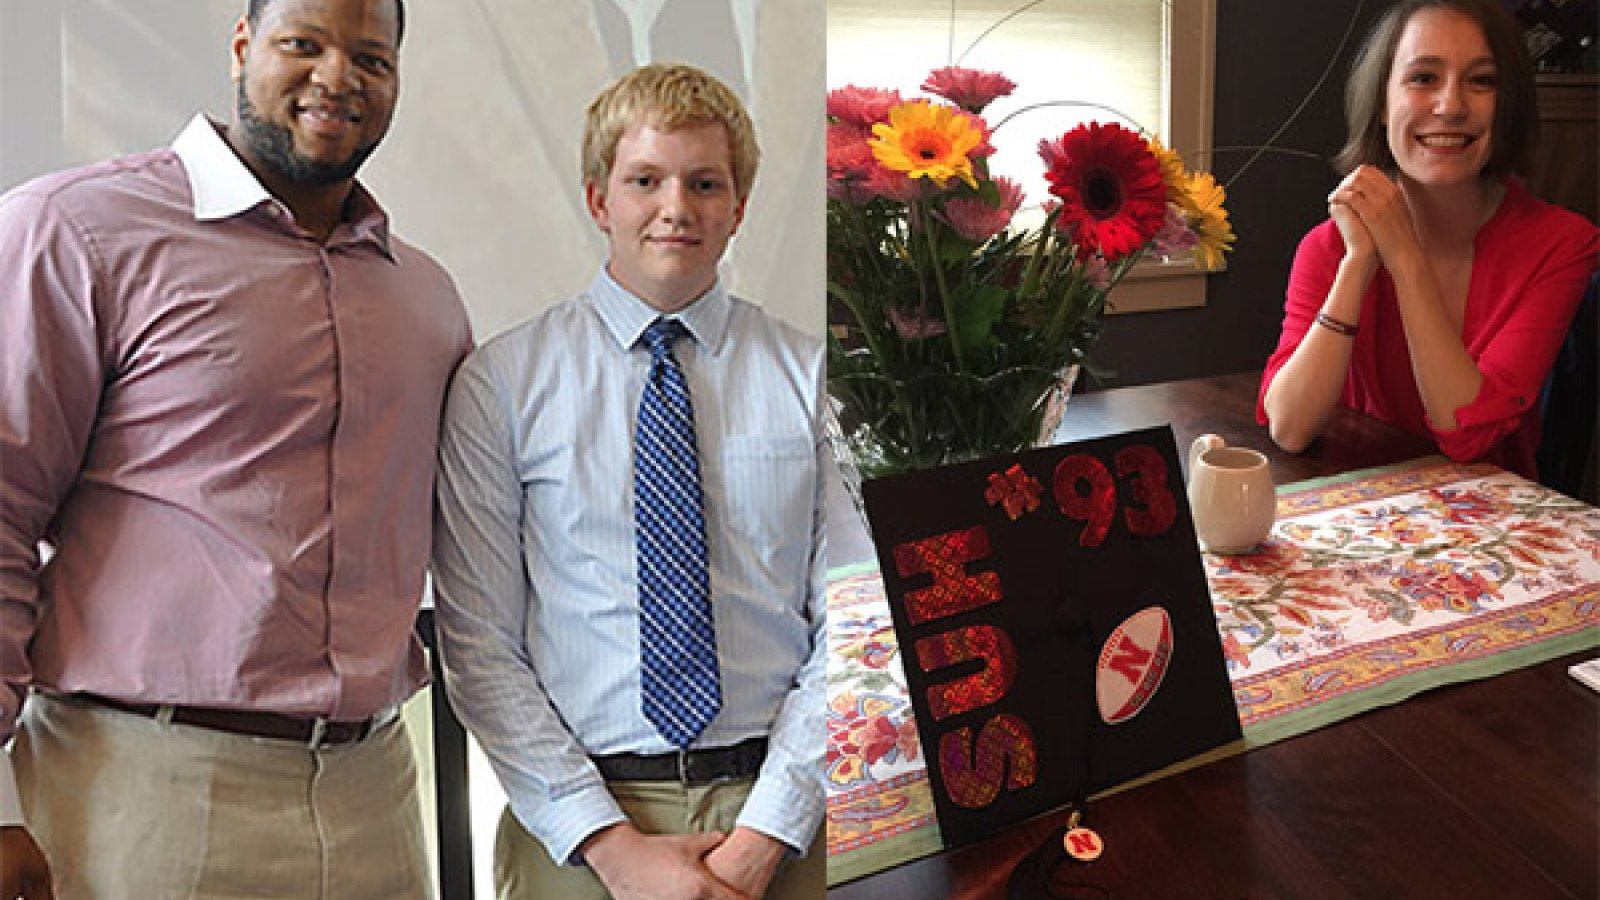 NFL star Ndamukong Suh, a former Husker football player and a Nebraska Engineering construction management alumnus, has helped recent graduates Matt Stier and Brynne Schwabauer with not only a scholarship but also a mentoring relationship.